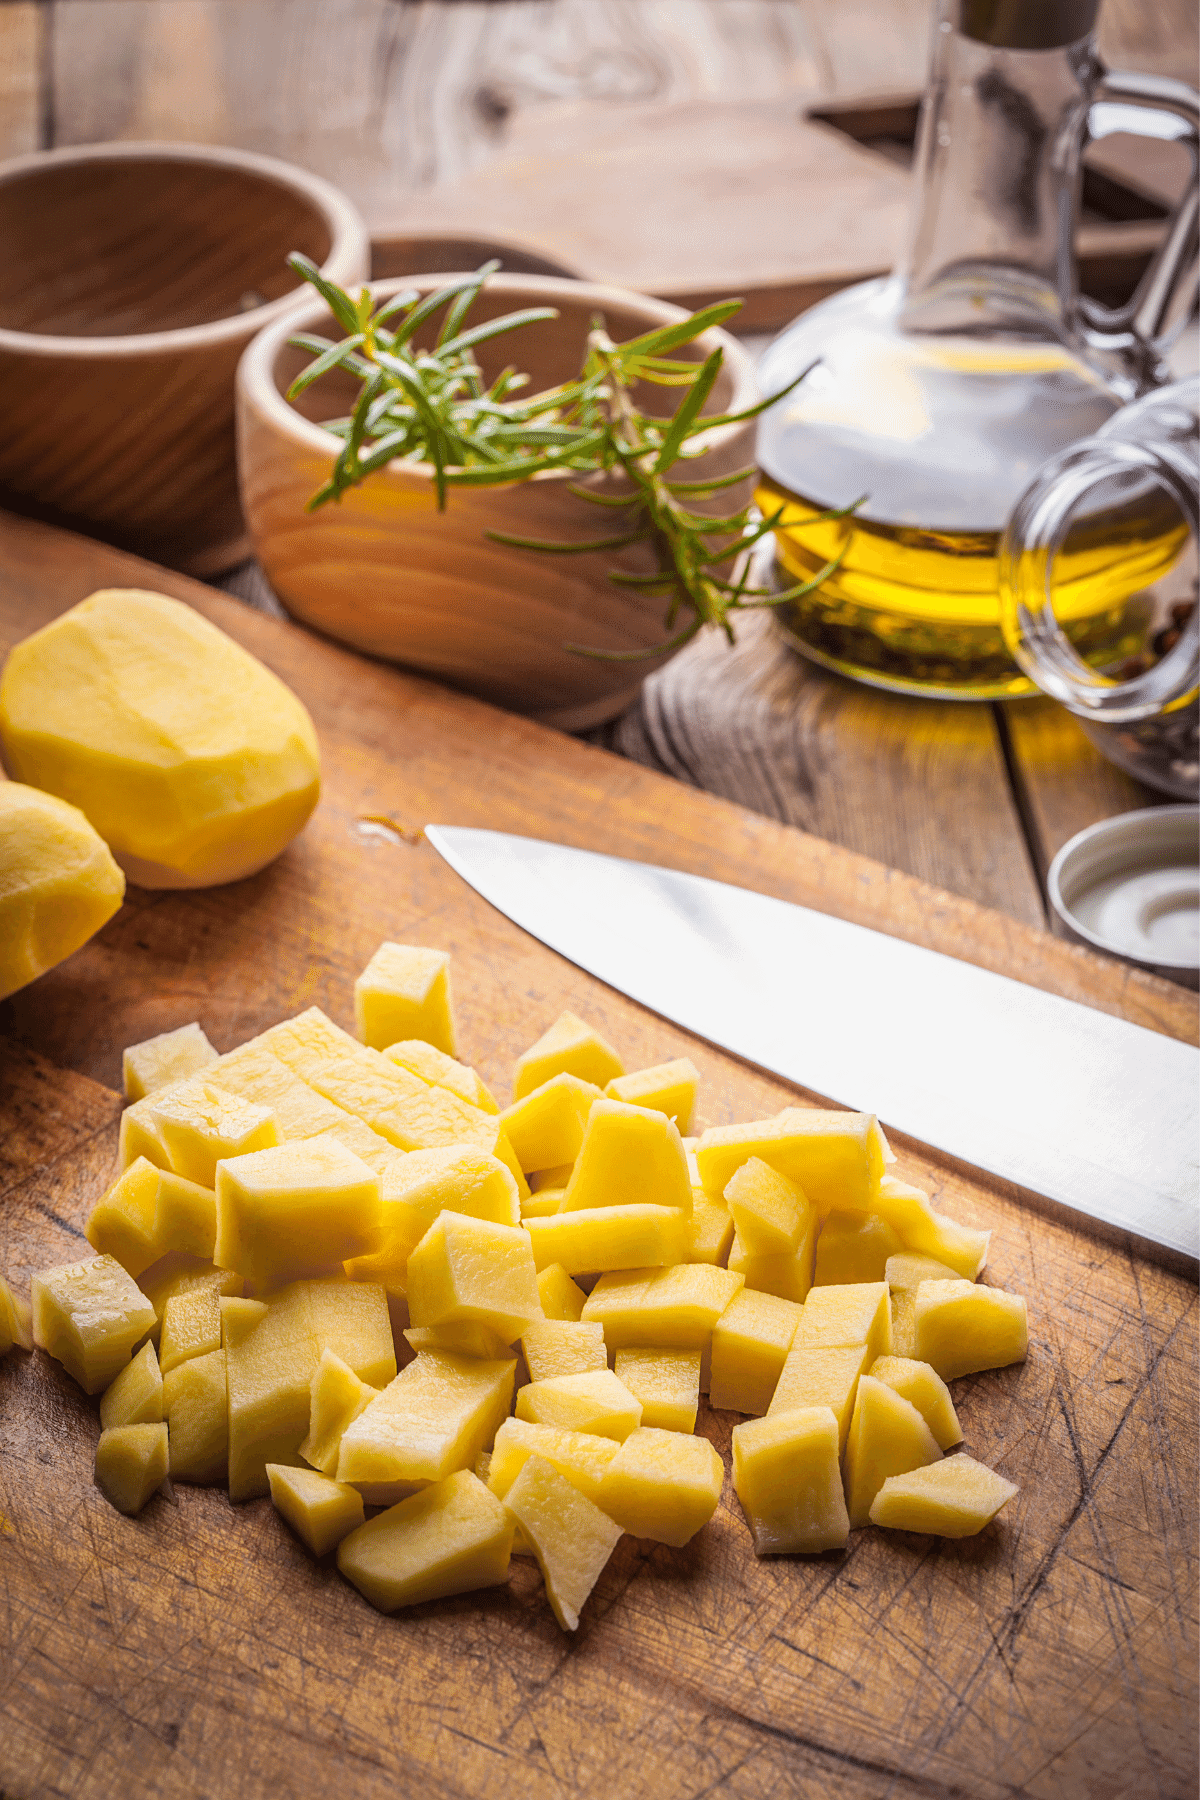 Peeled and diced potatoes on a cutting board with fresh spices and oil